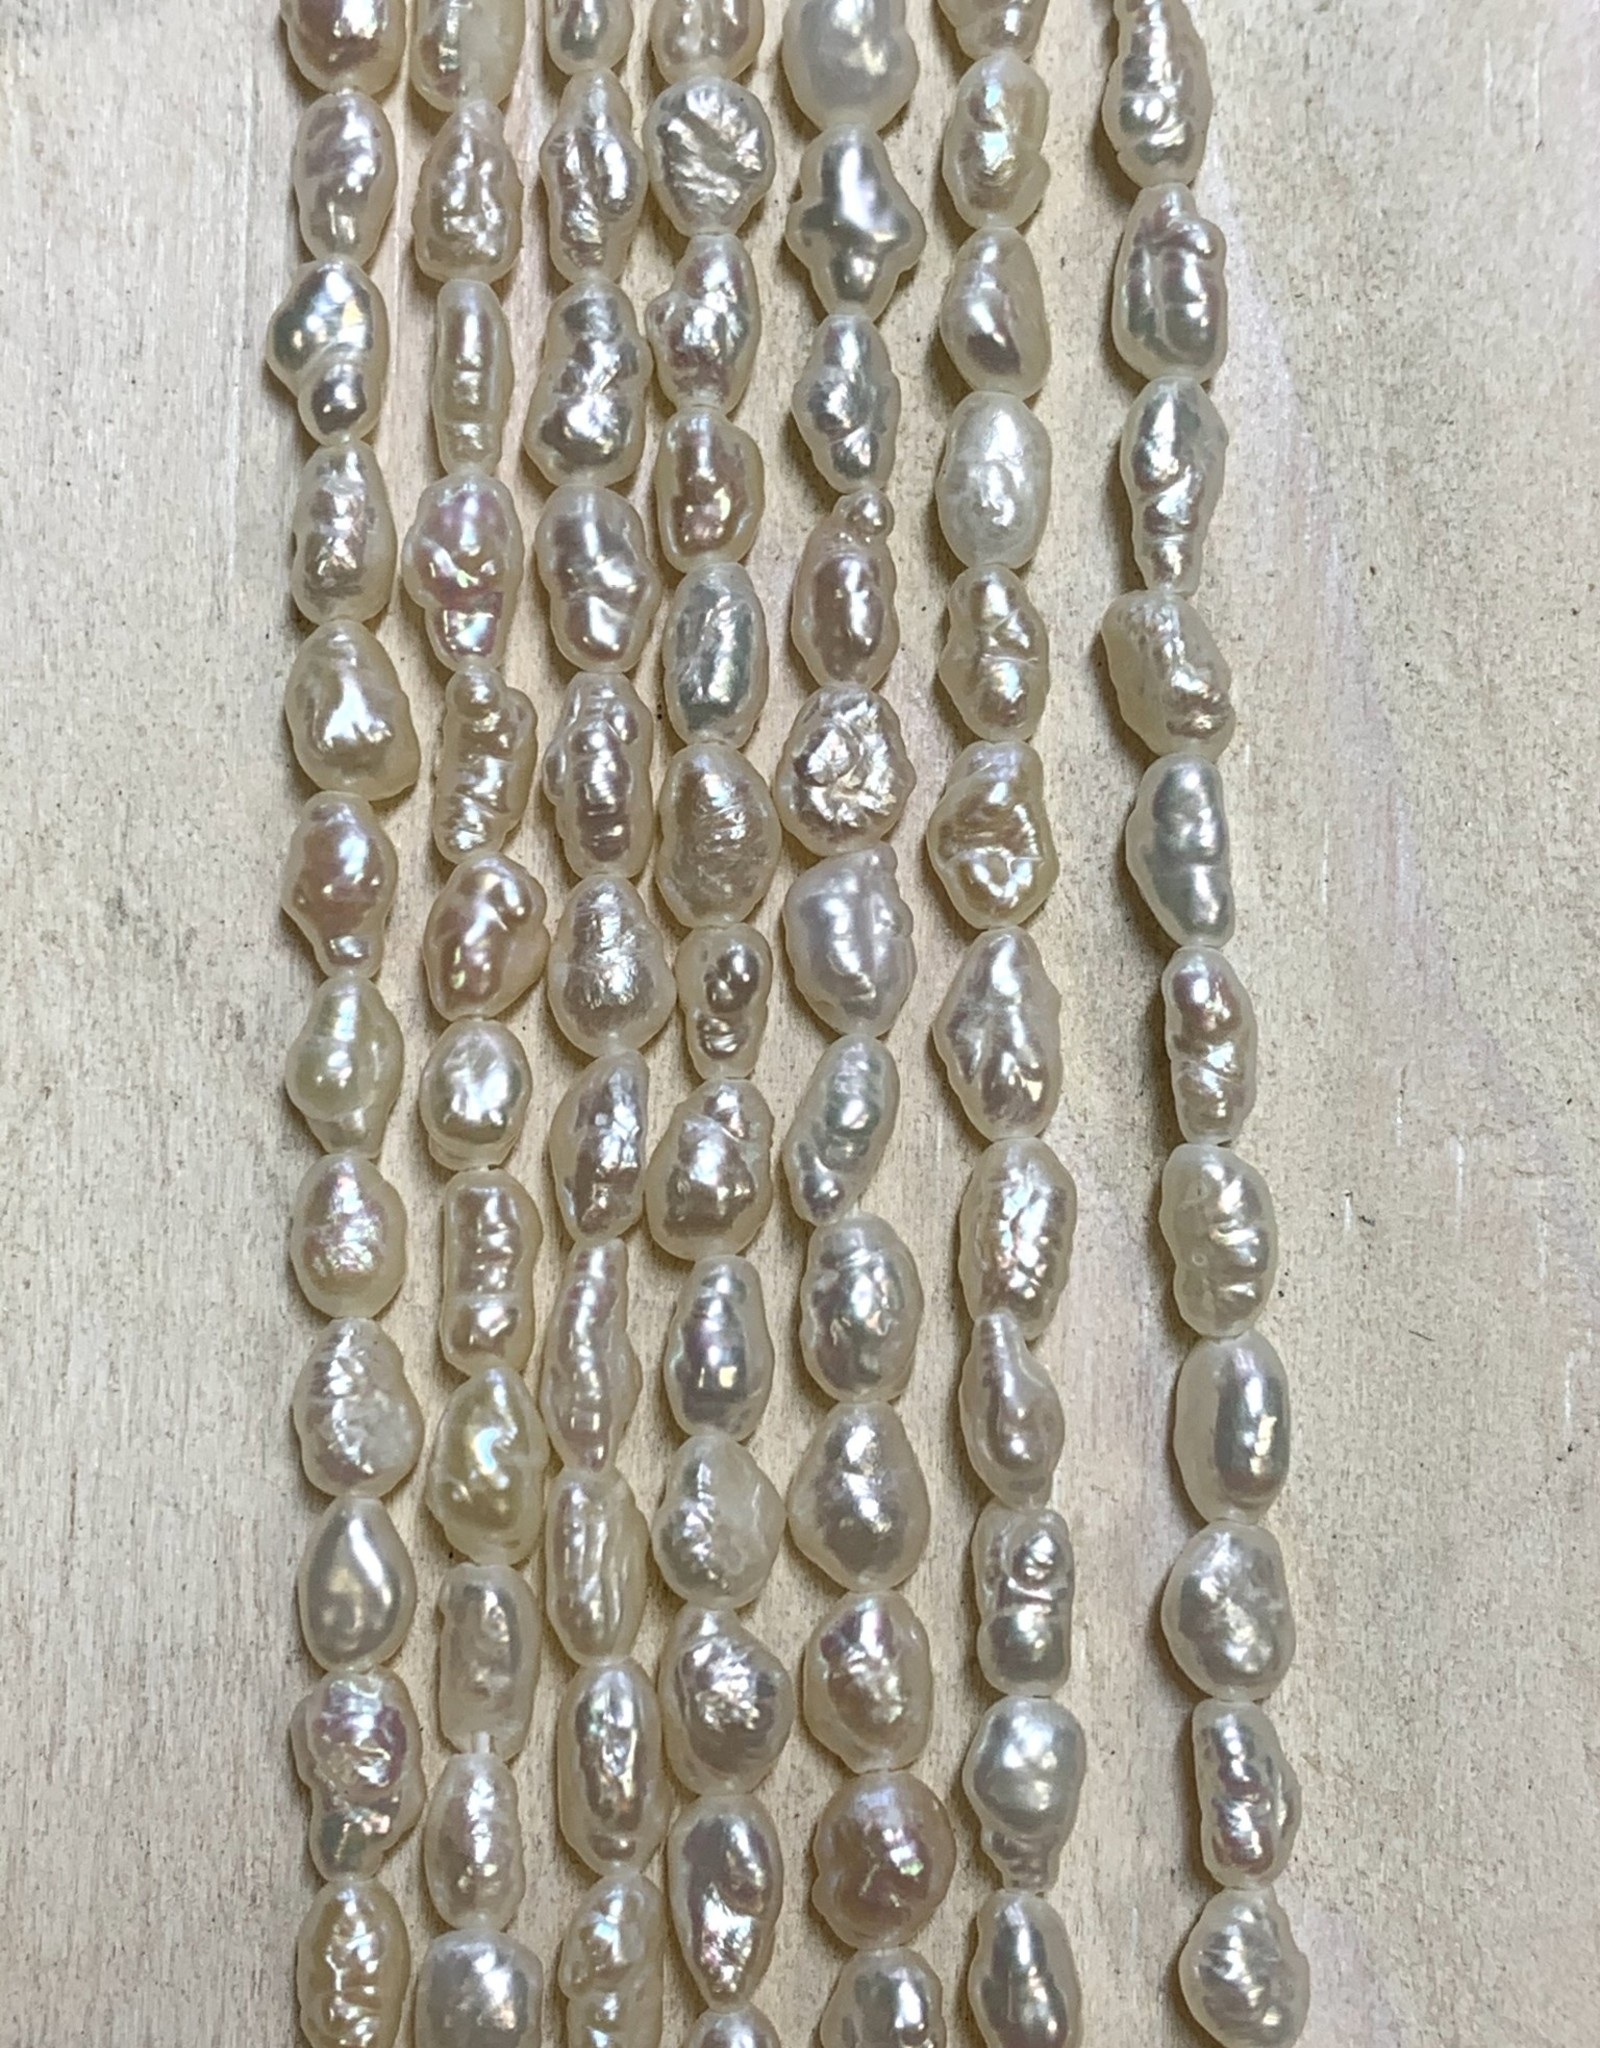 4mm Rice Keshi Pearls Strand